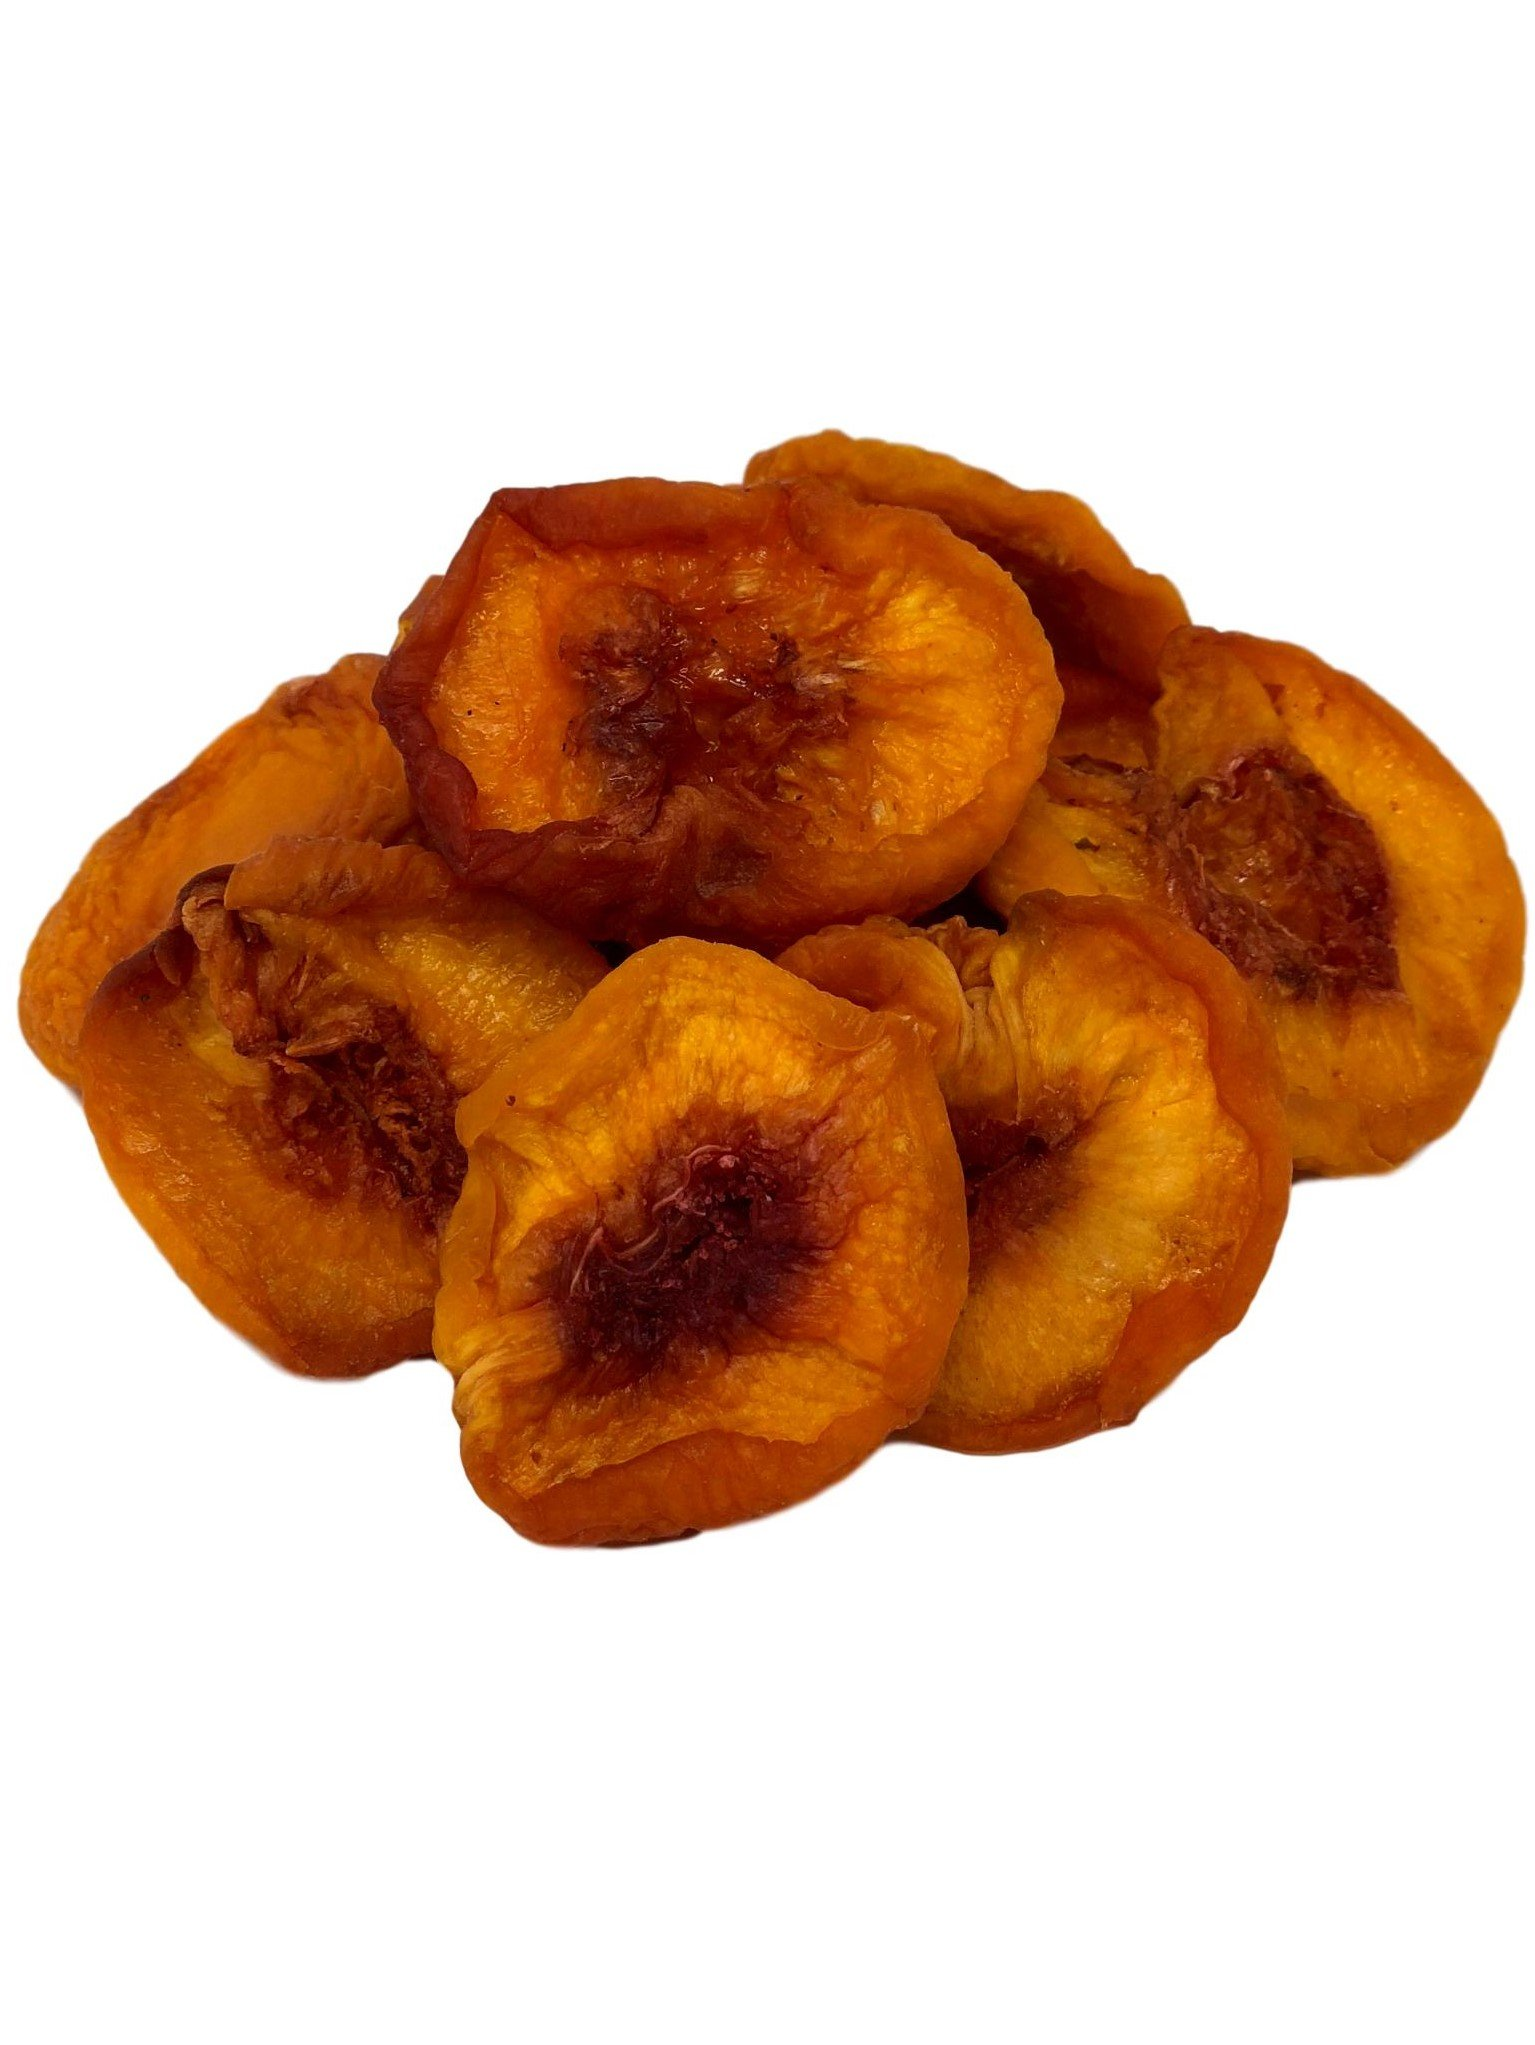 NUTS U.S. - Dried Fancy Peaches, No Added Sugar, Natural!!! (2 LBS)